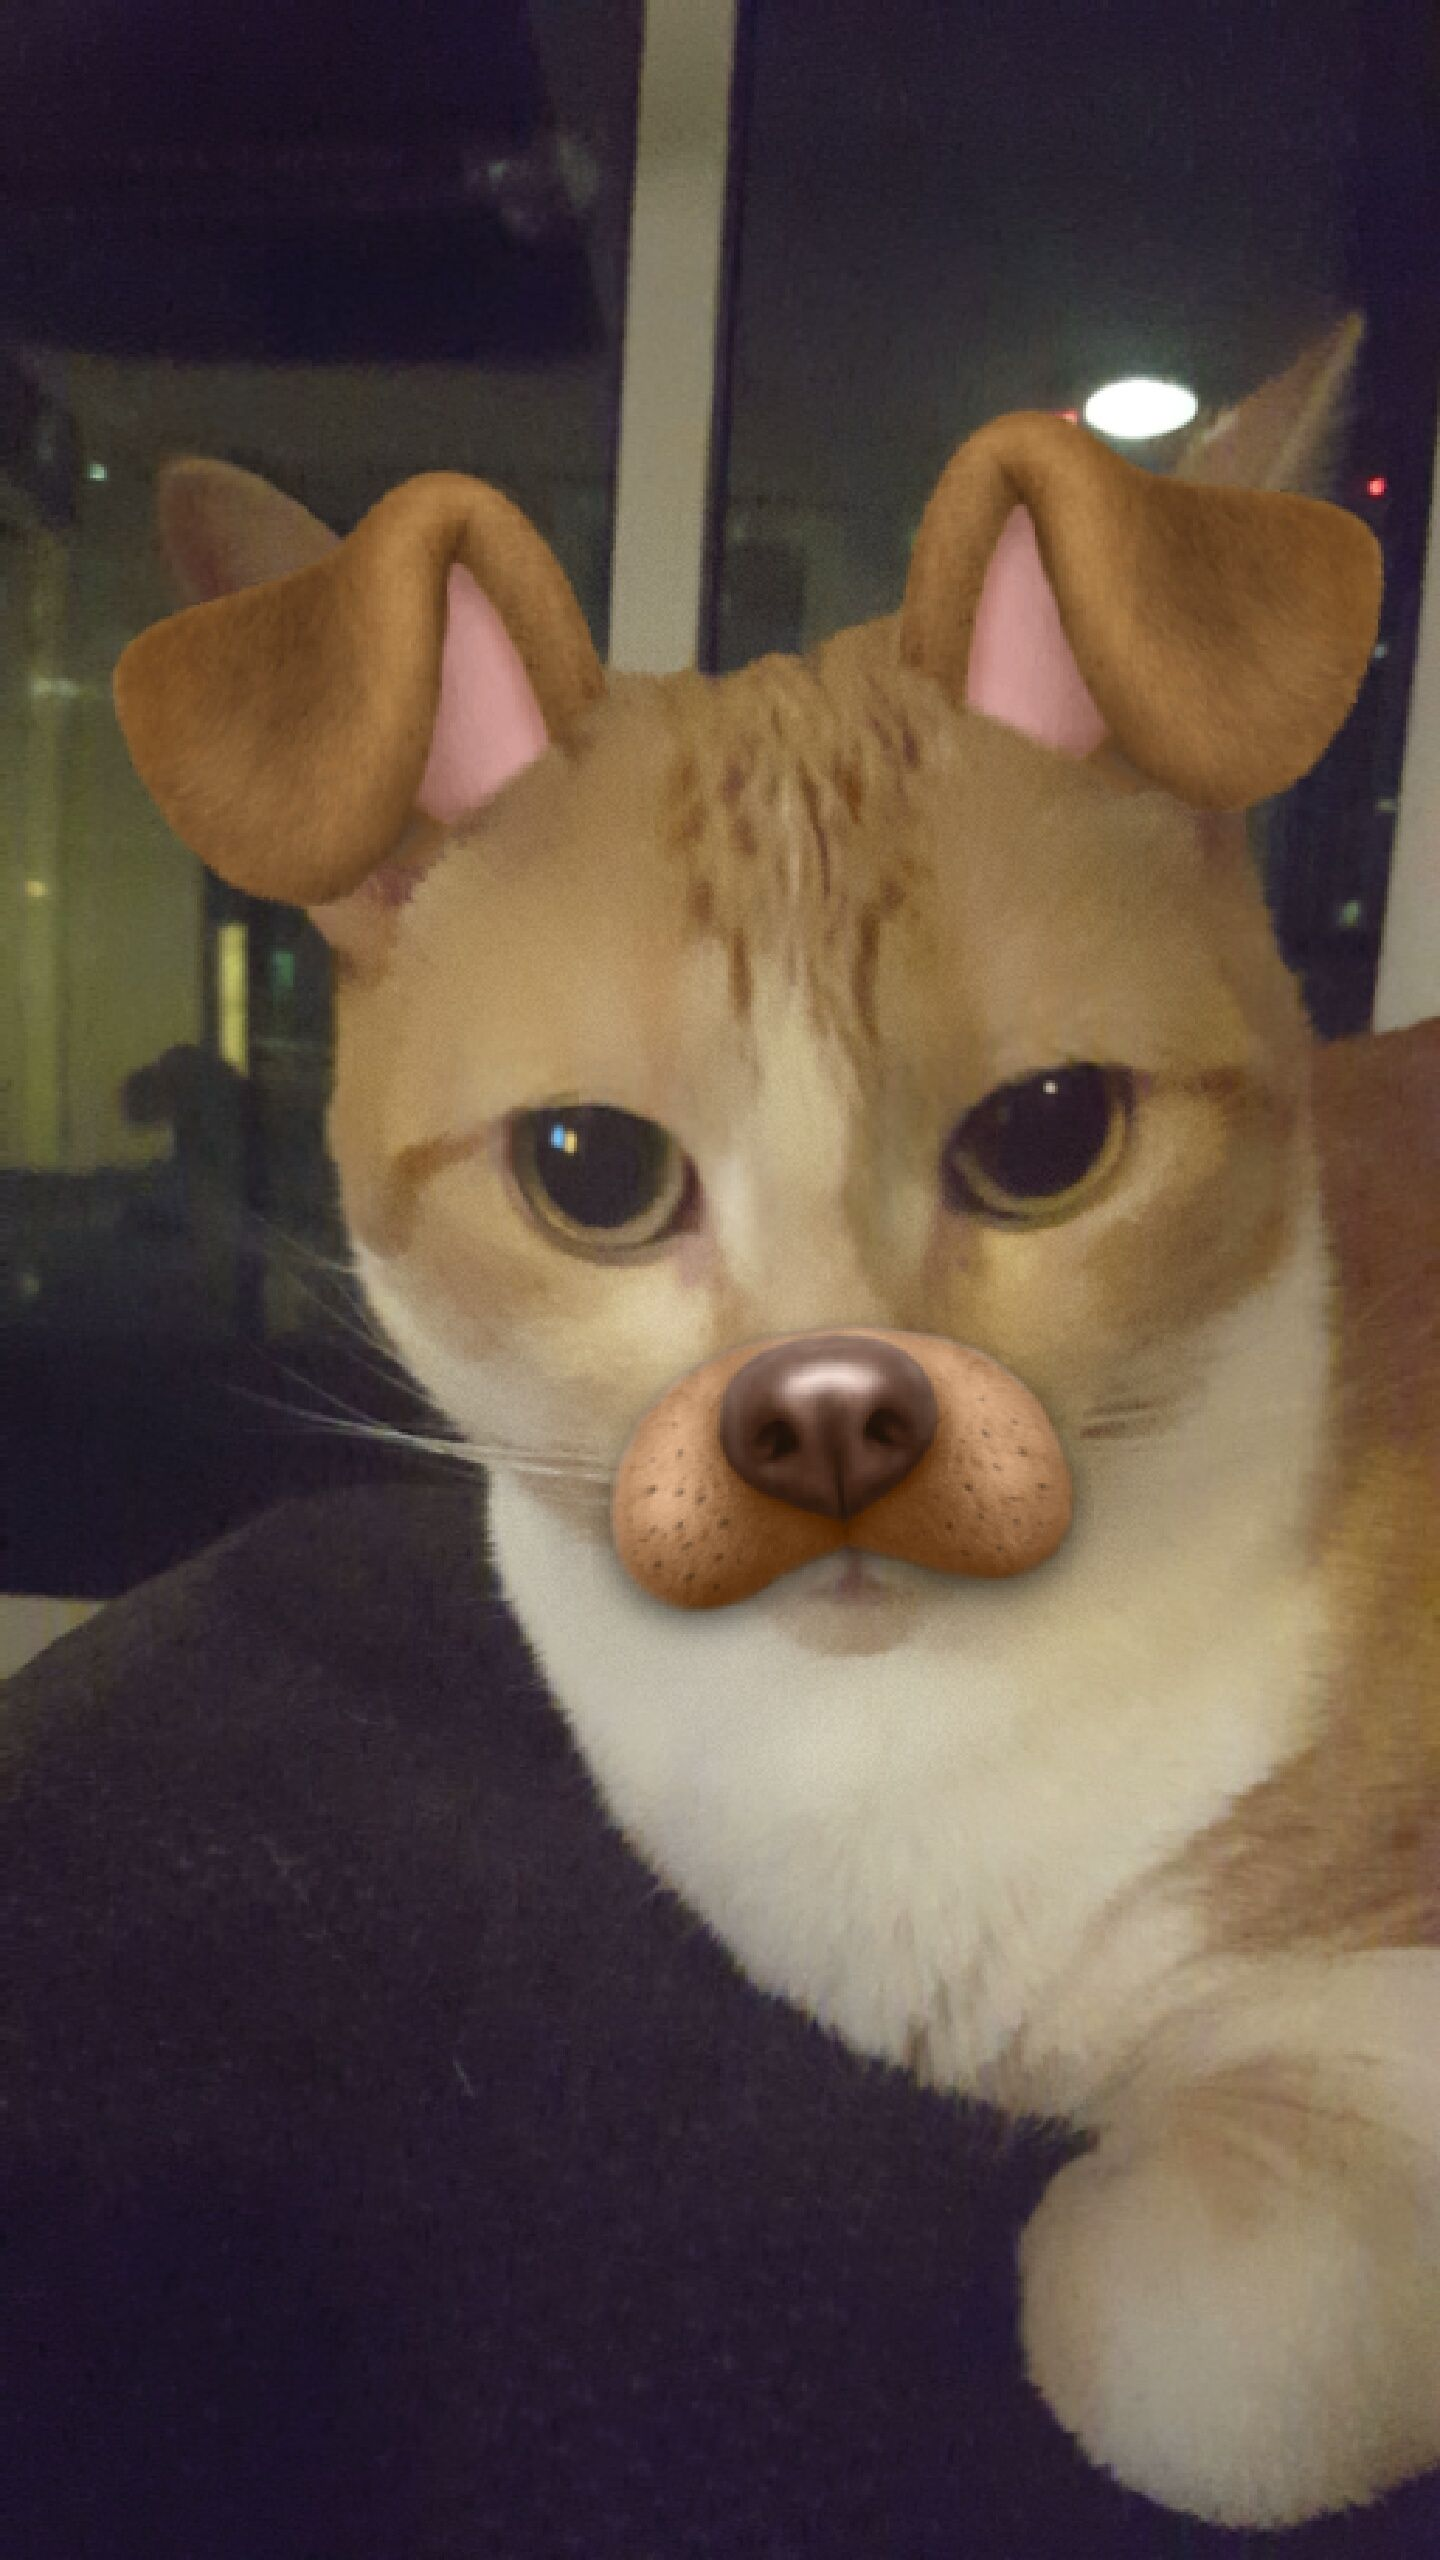 So I Got The Snapchat Filters To Work On My Cat R Aww Funny Animal Photos Cute Cats Sleeping Kitten